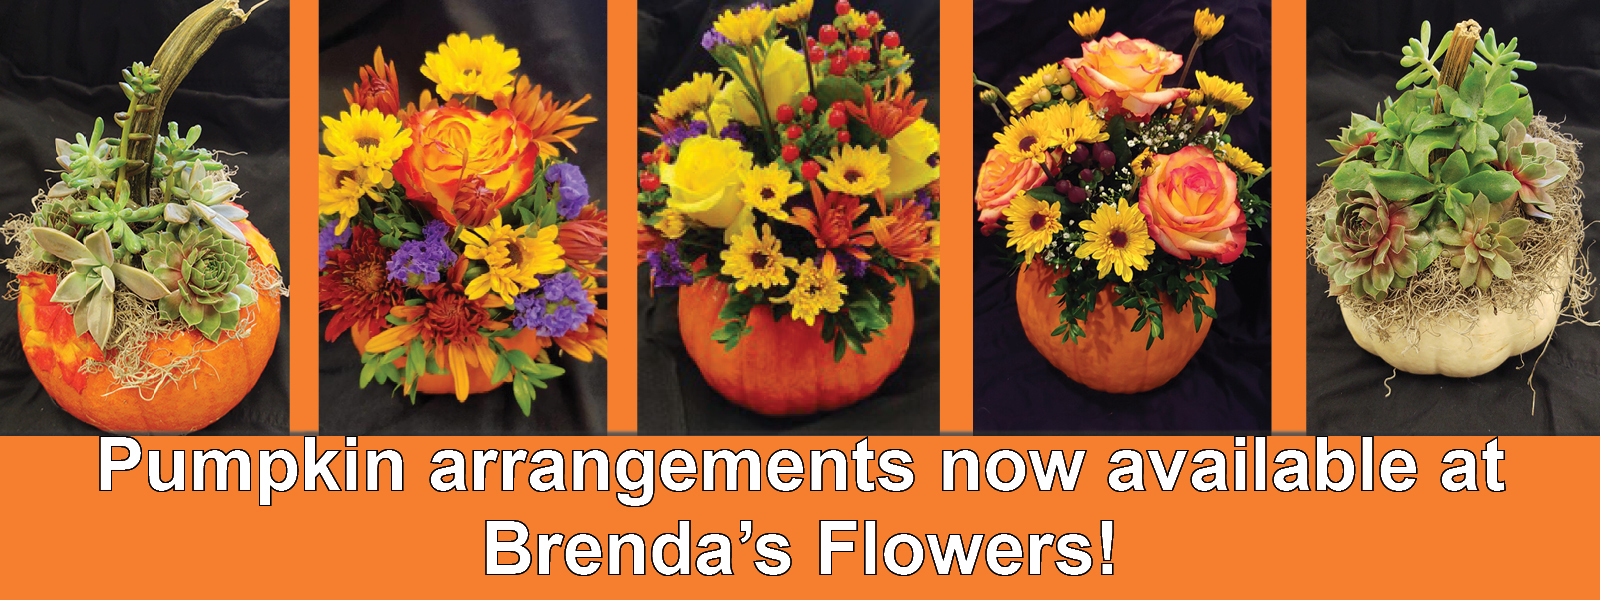 pumpkin arrangements | Brenda's Flowers | Westtown Amish Market